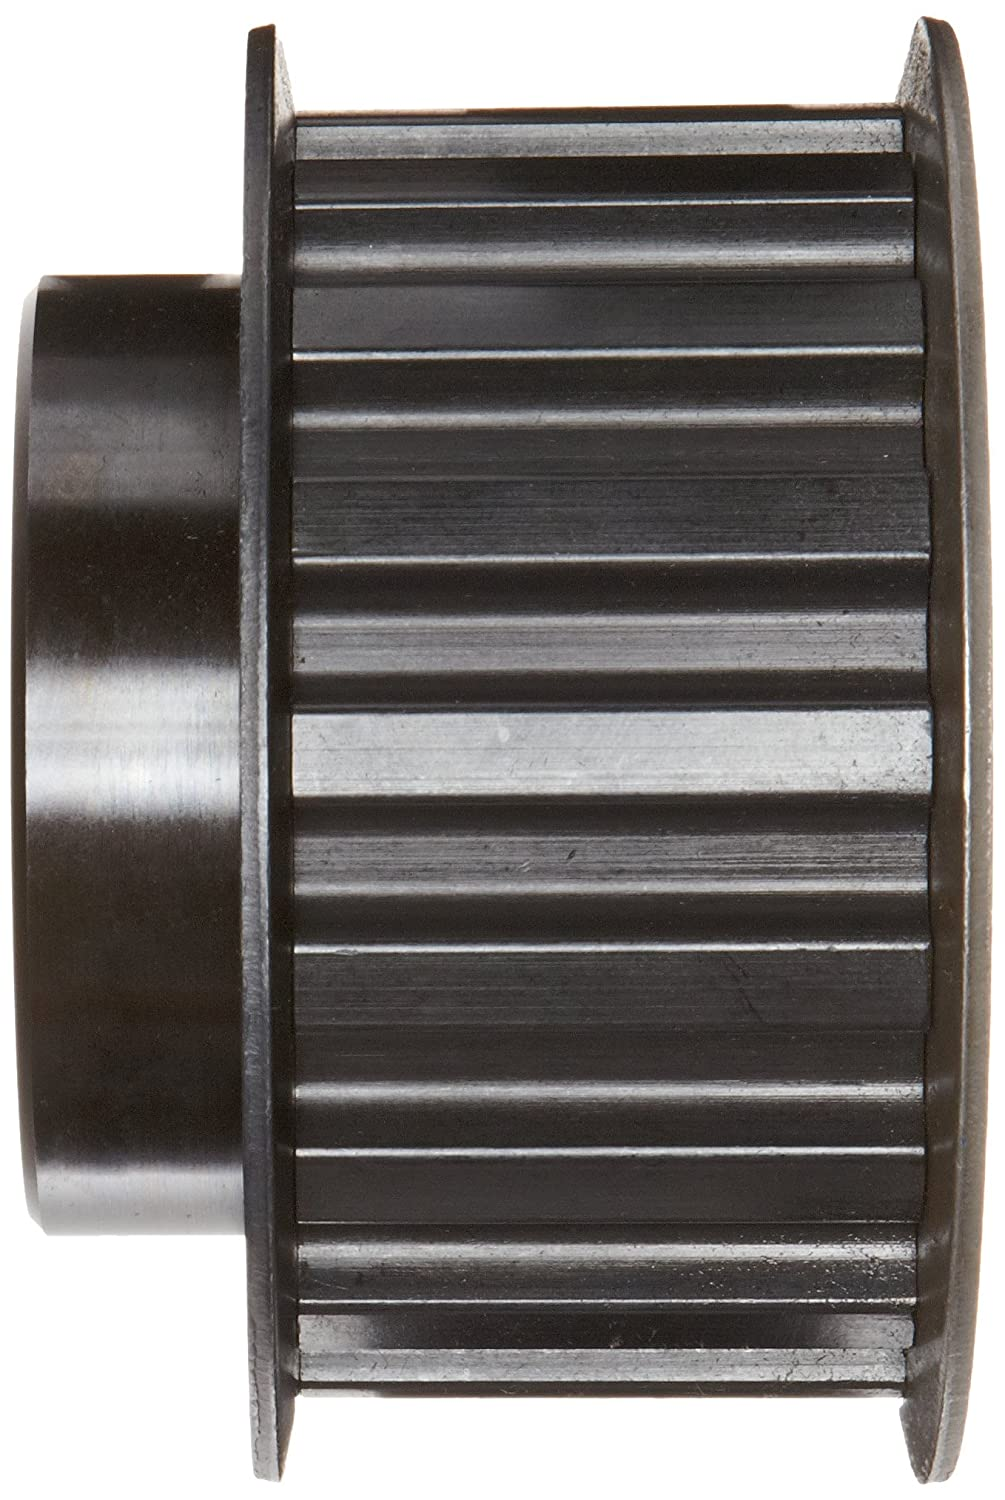 1//2 Pitch 0.625 Bore Timing Pulley 1//2 Pitch 3//4 And 1 Wide Belts 0.625 Bore Timing Pulley Heavy 3//4 And 1 Wide Belts Martin 14H100 DF-1 Style